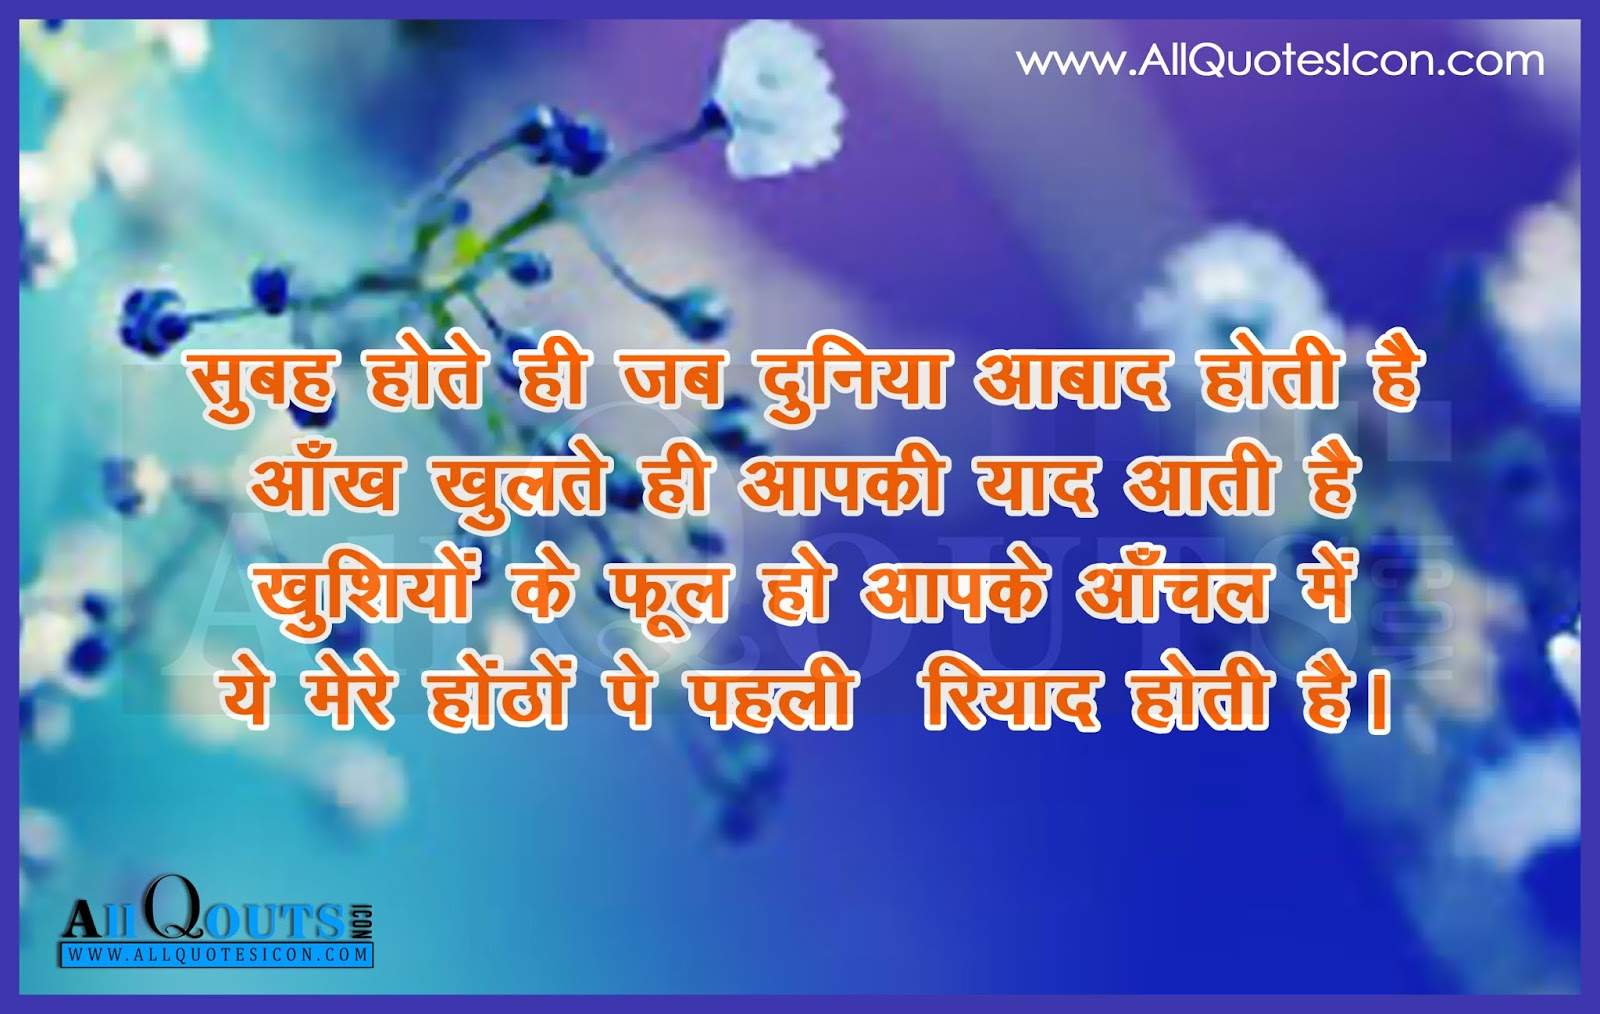 Quotes For Friends Hindi